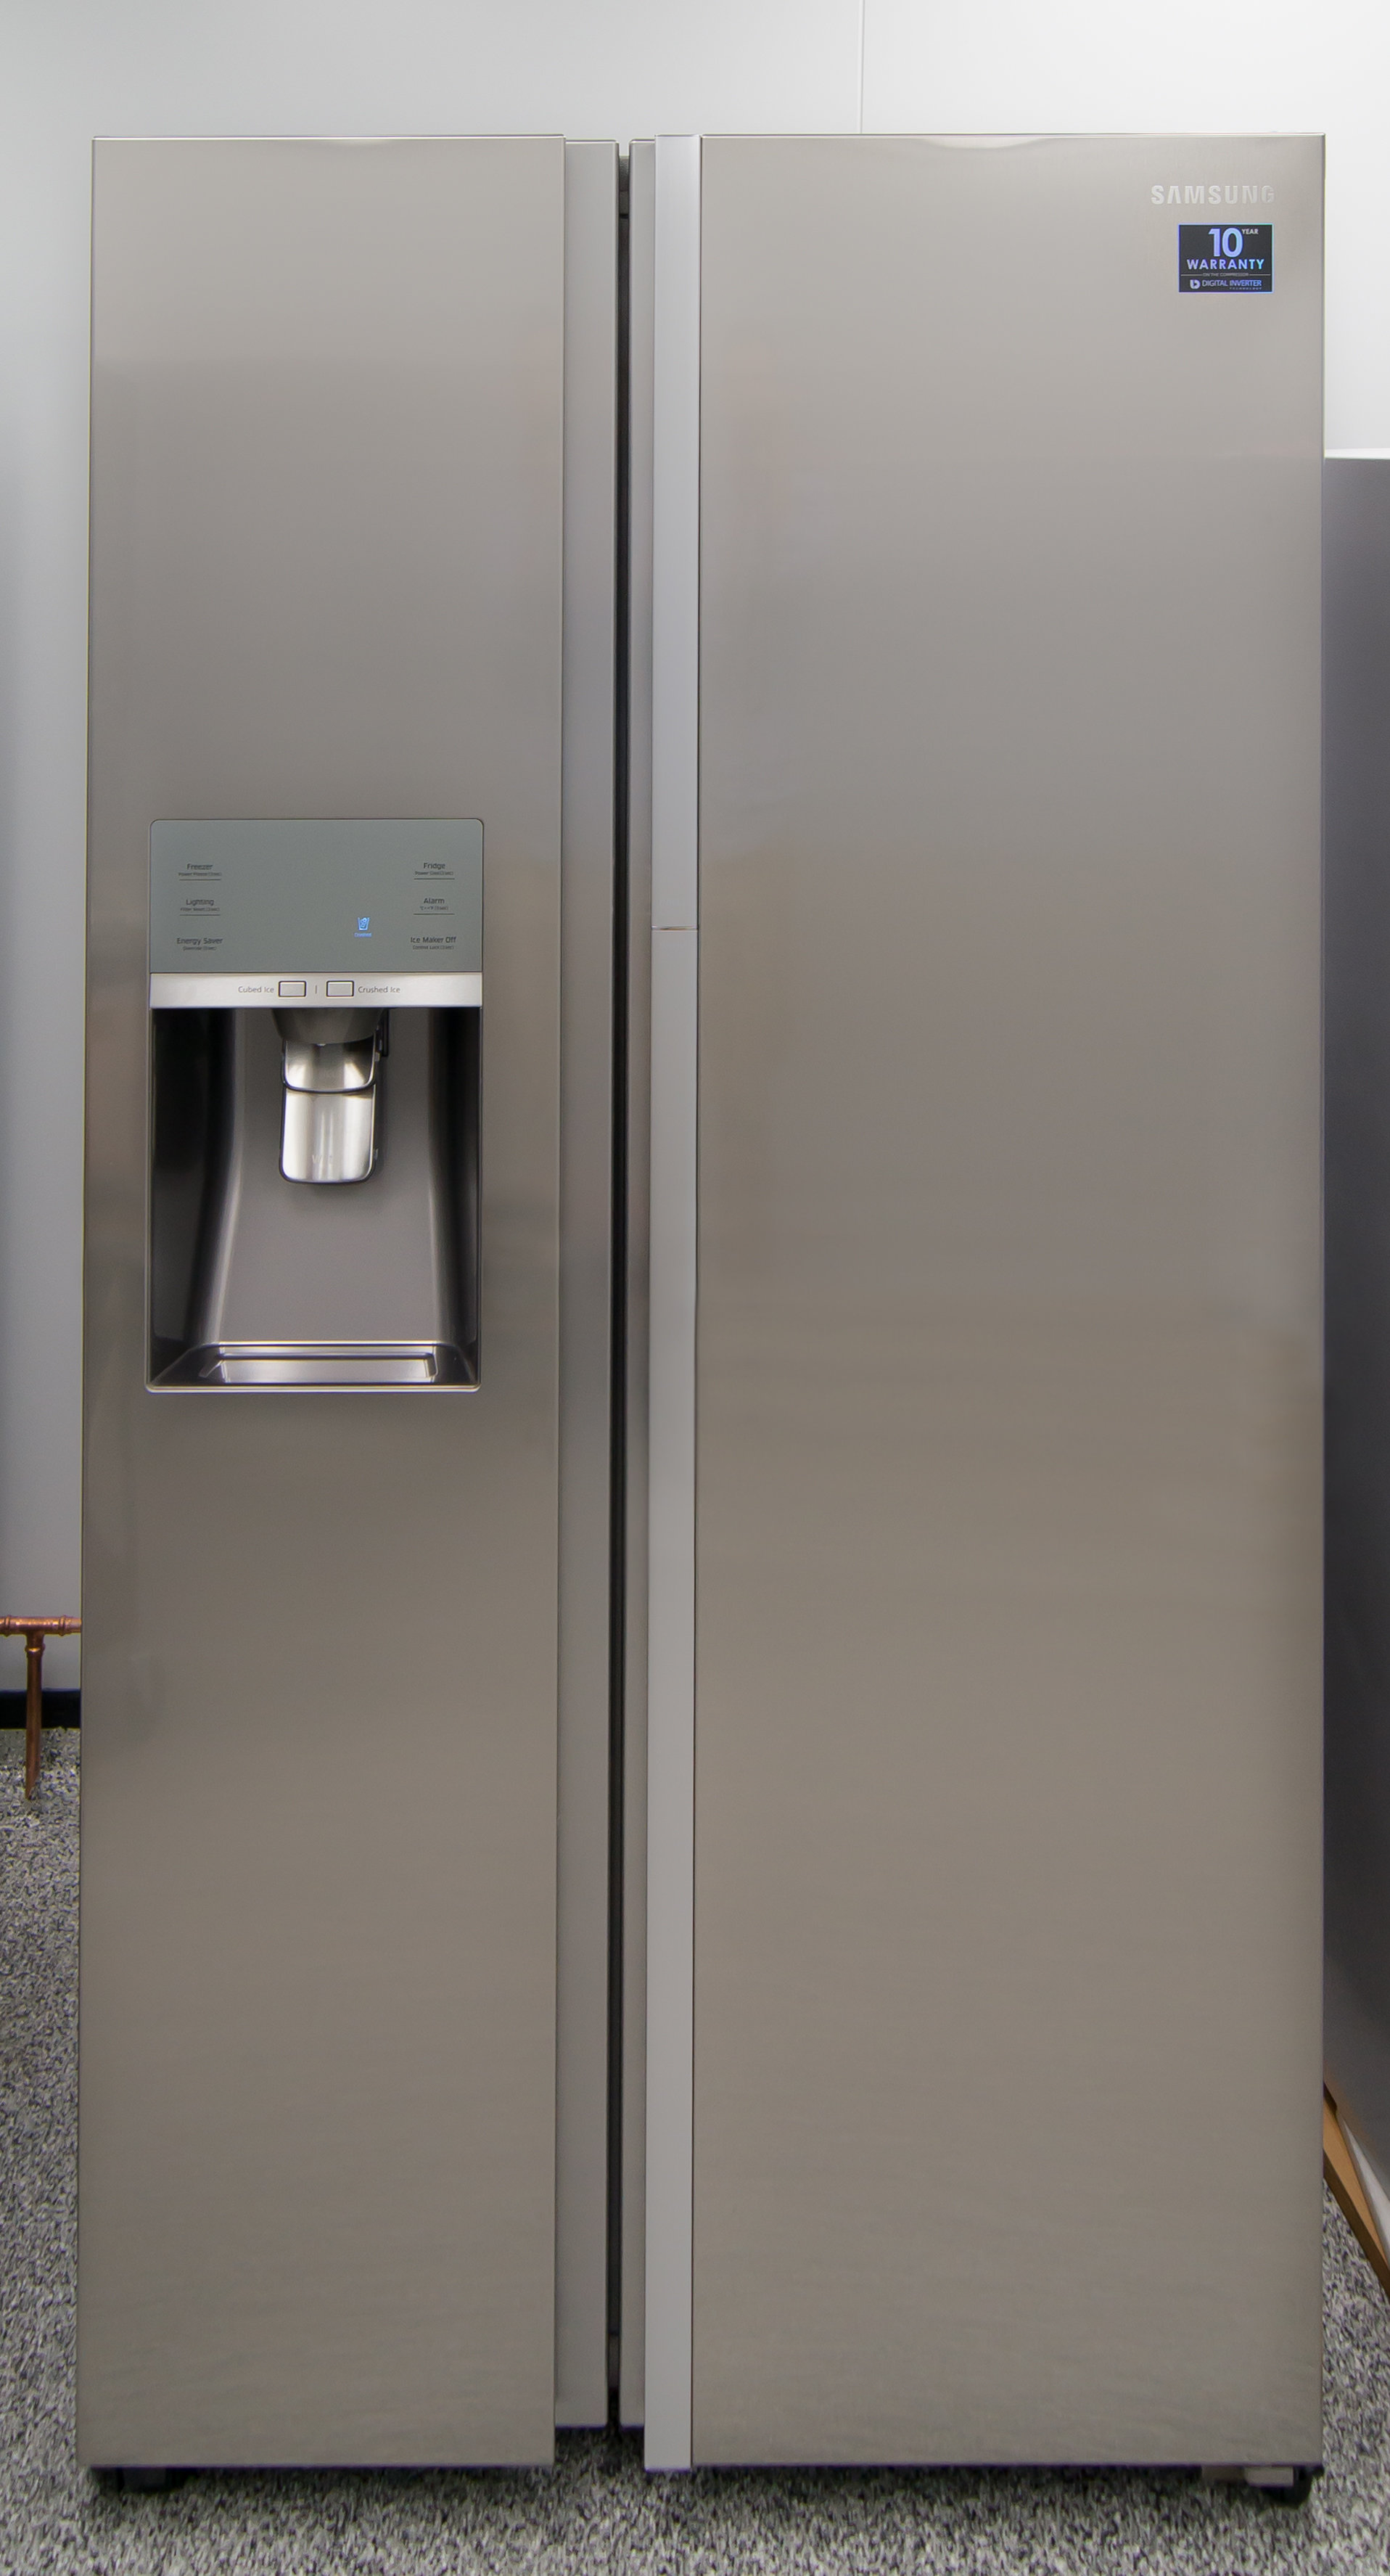 Superb From The Outside, Only The Recessed Handles Indicate The Samsung  RH29H9000SR Food Showcase Is Different